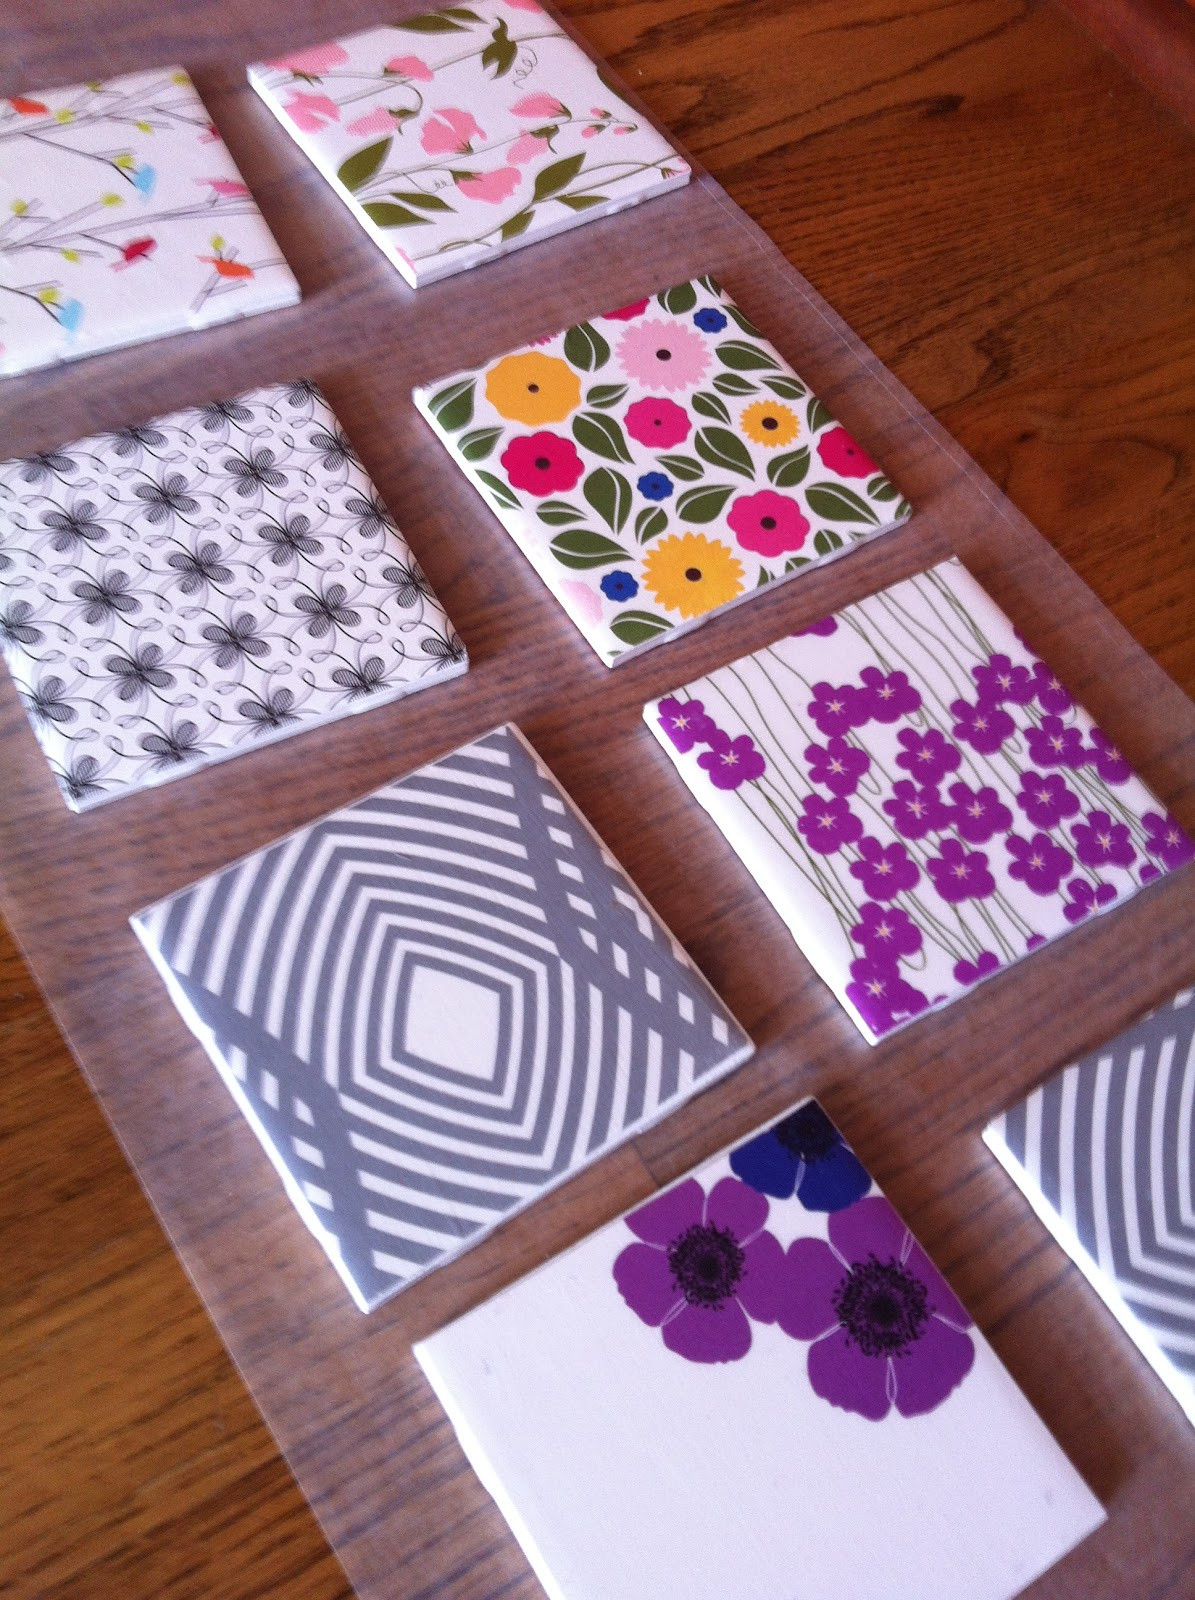 Best ideas about DIY Coaster Tiles . Save or Pin DIY Night Coasters Coasters Coasters Now.